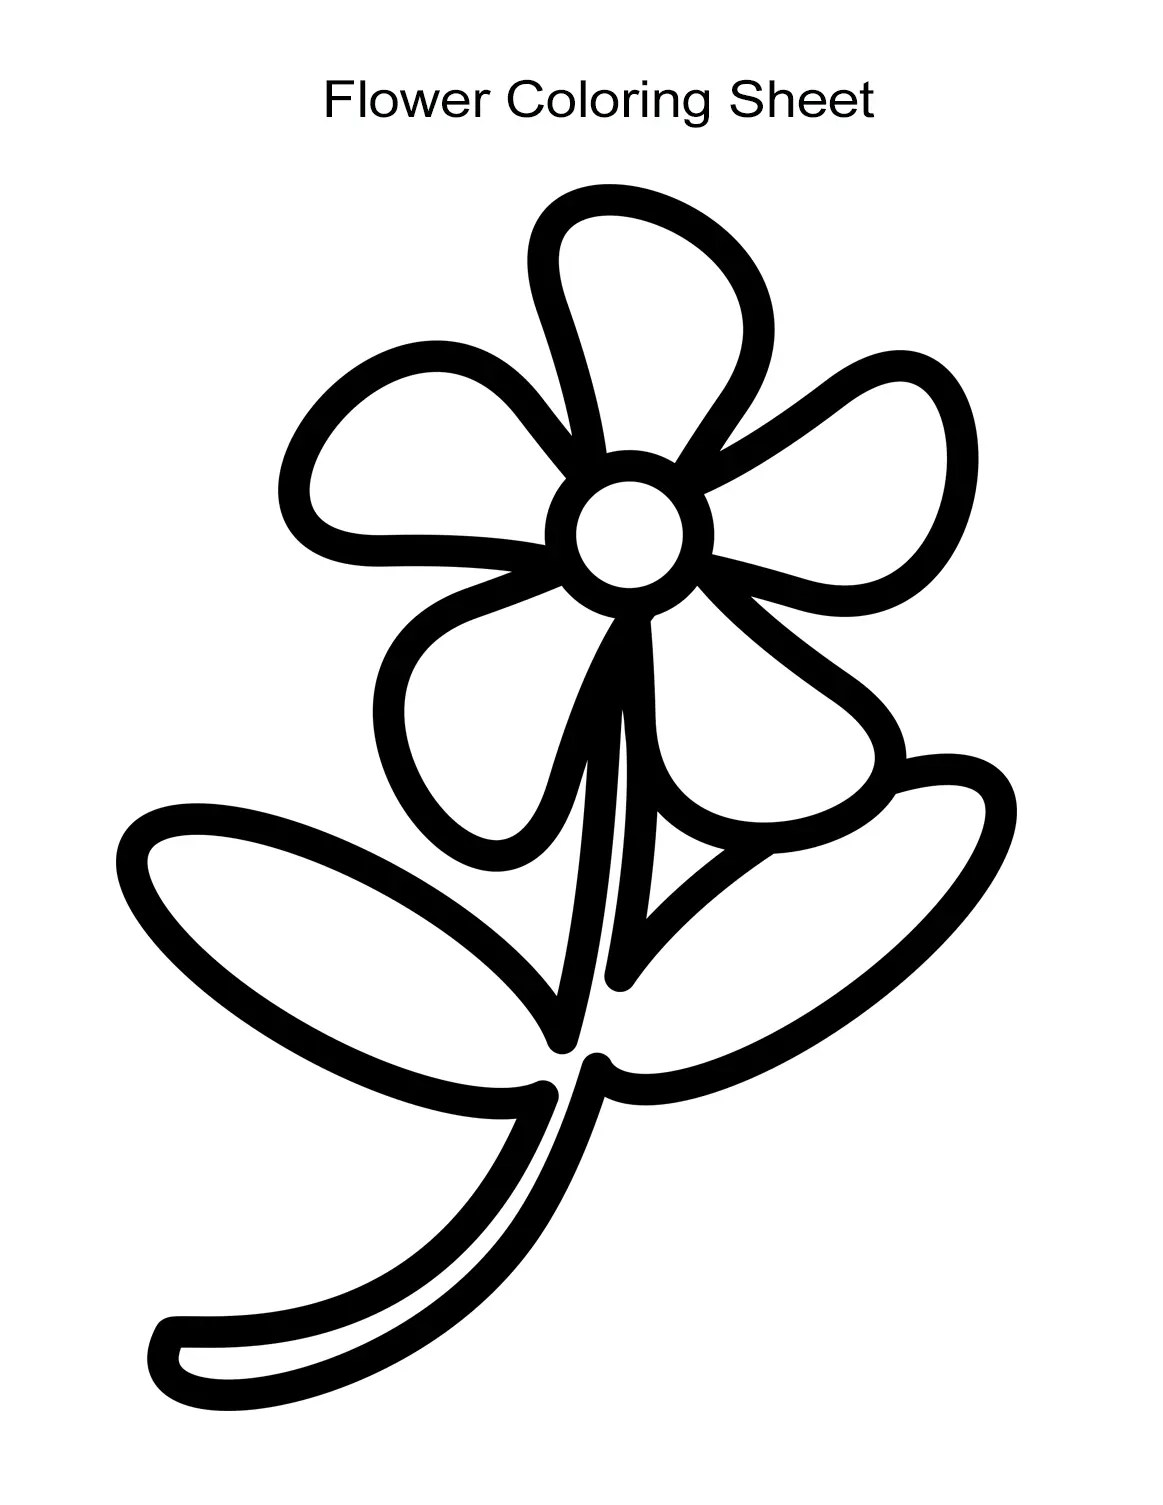 10 Flower Coloring Sheets For Girls And Boys Free